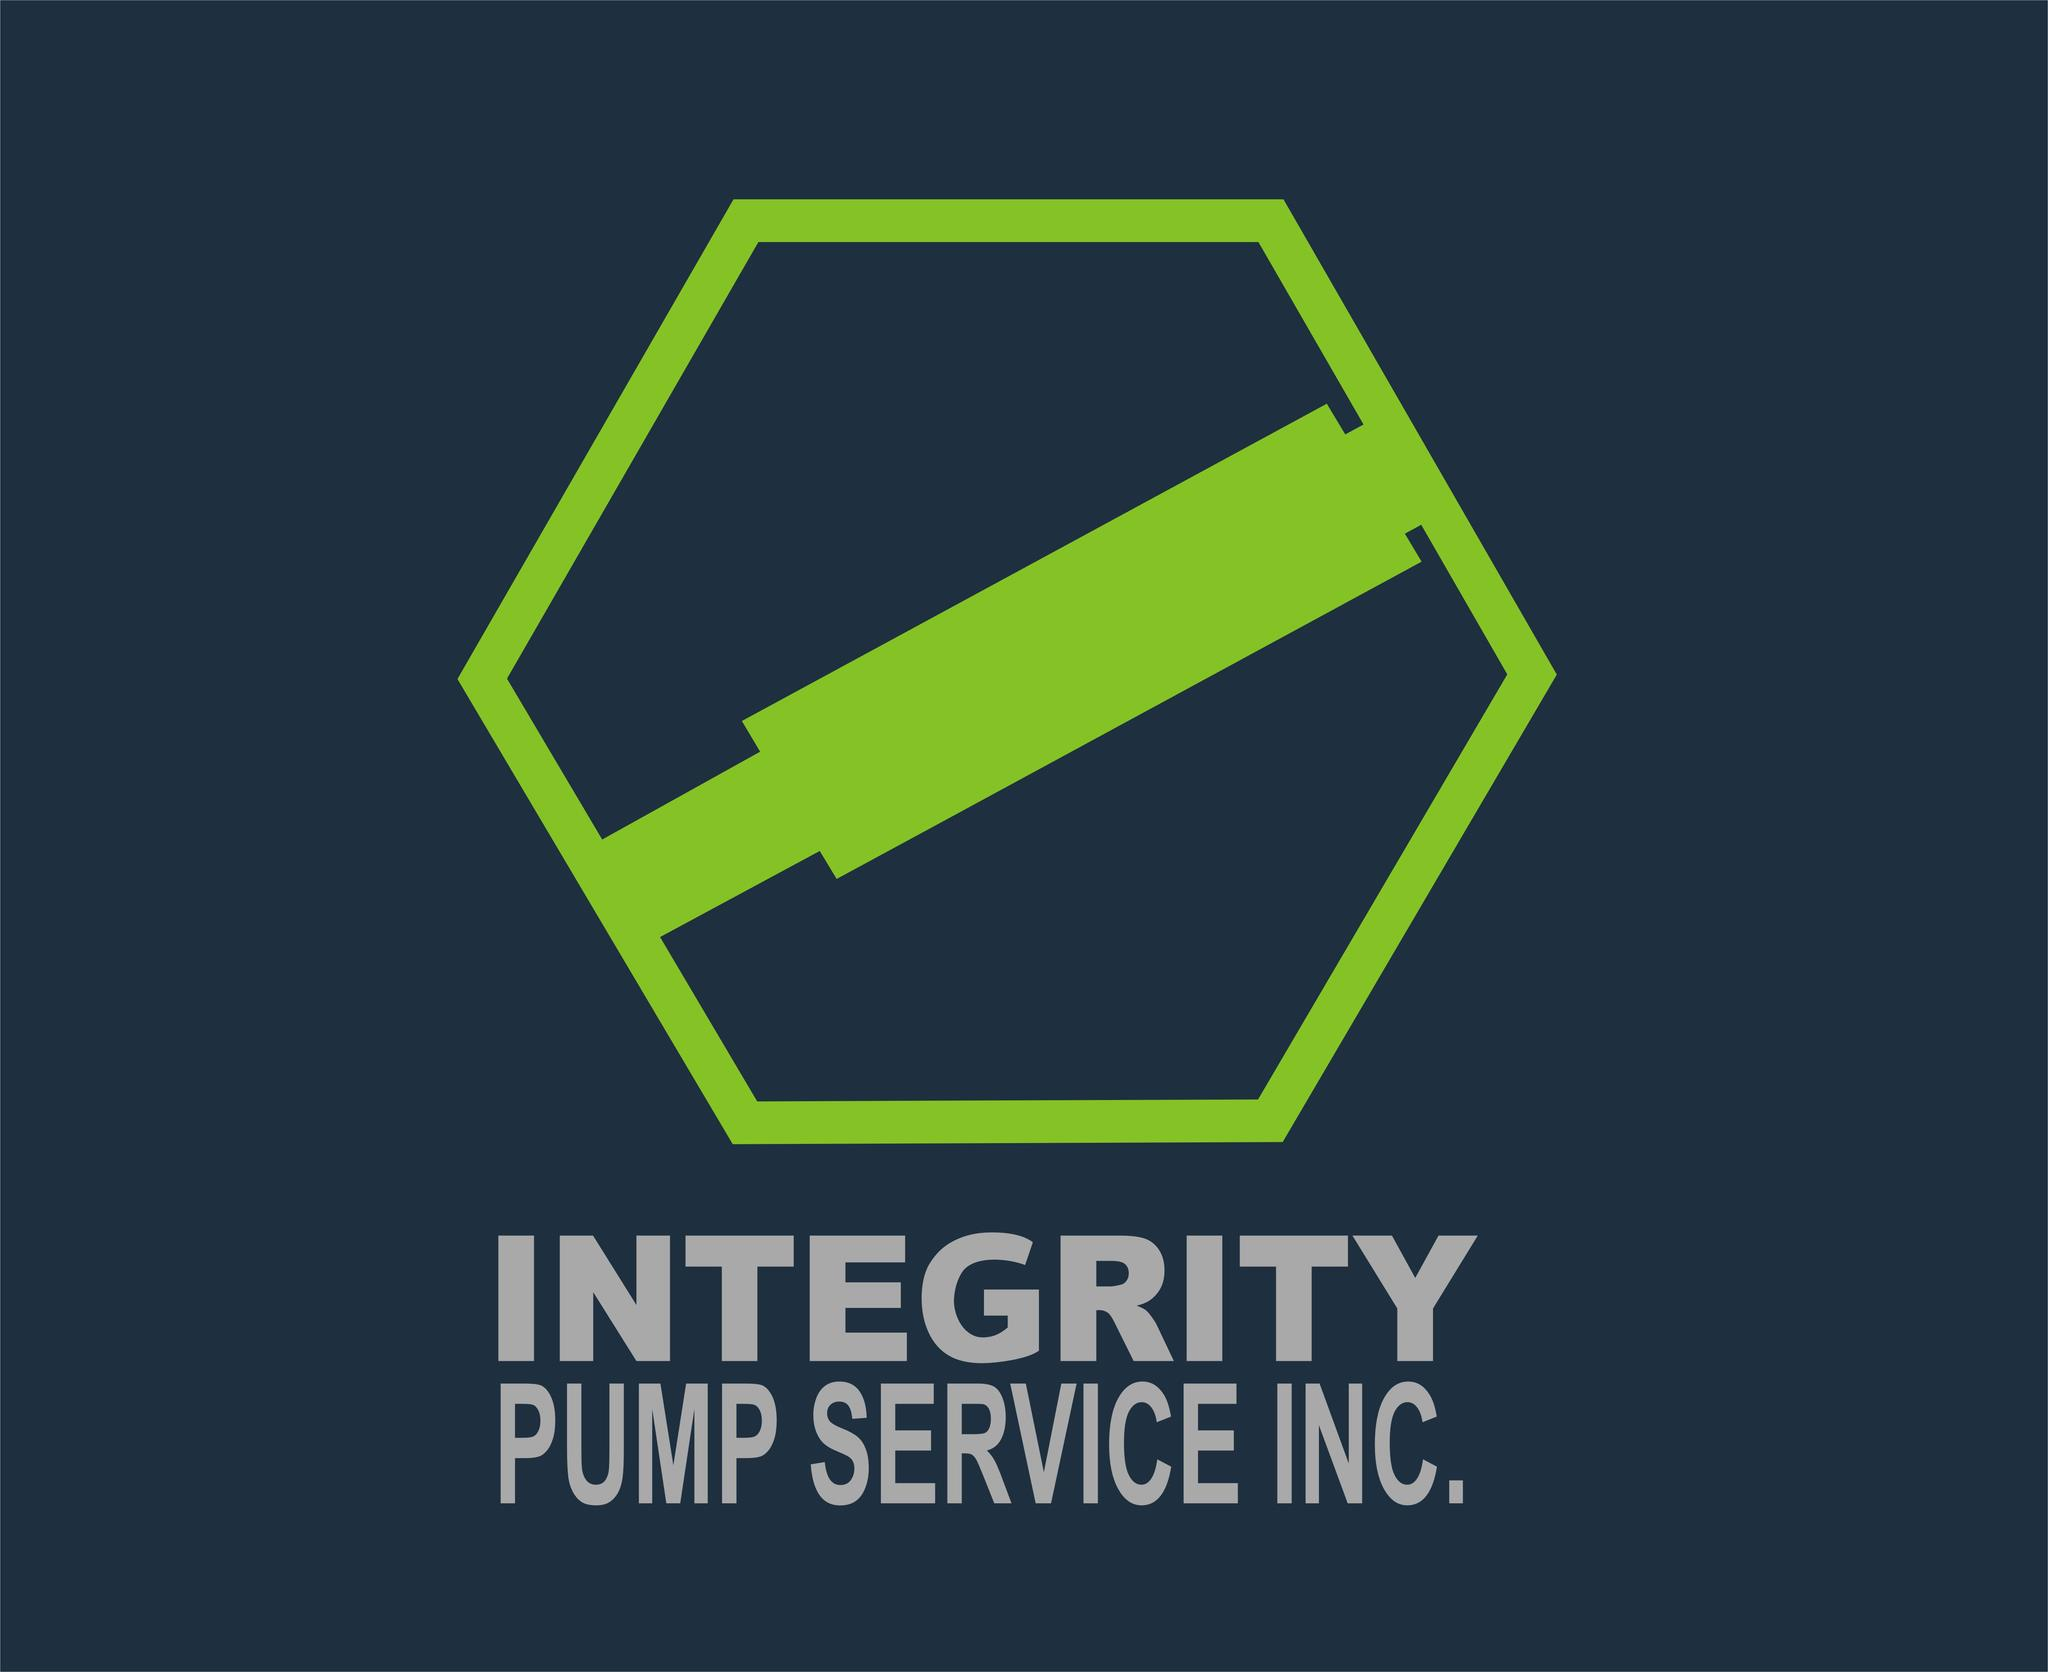 Integrity Pump Service Inc logo